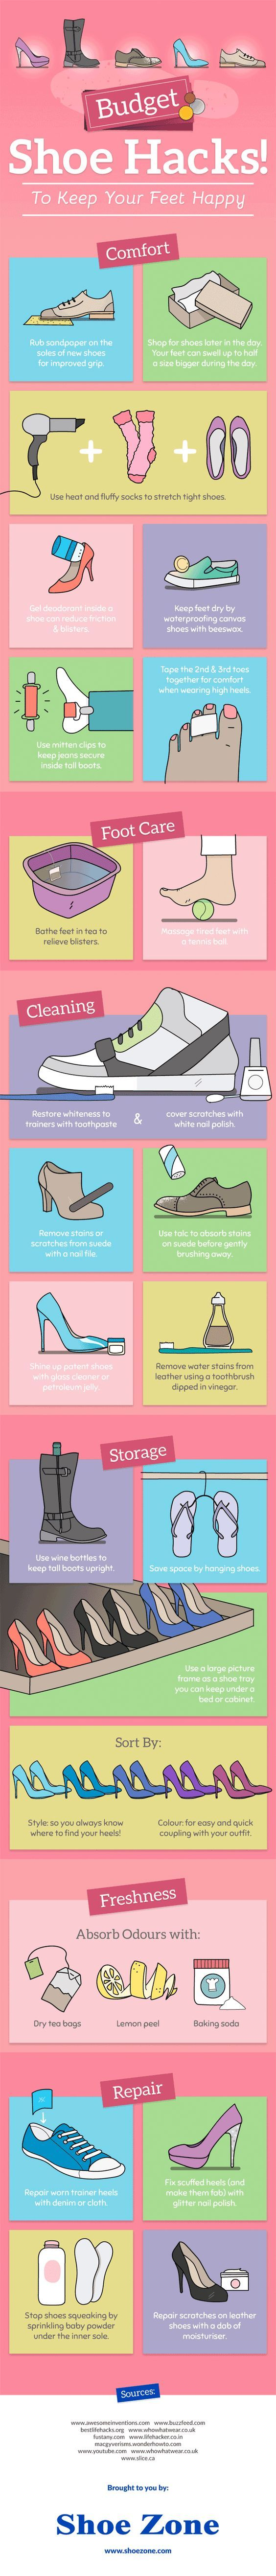 Infographic: Shoe Hacks for Happy Feet | Mental Floss